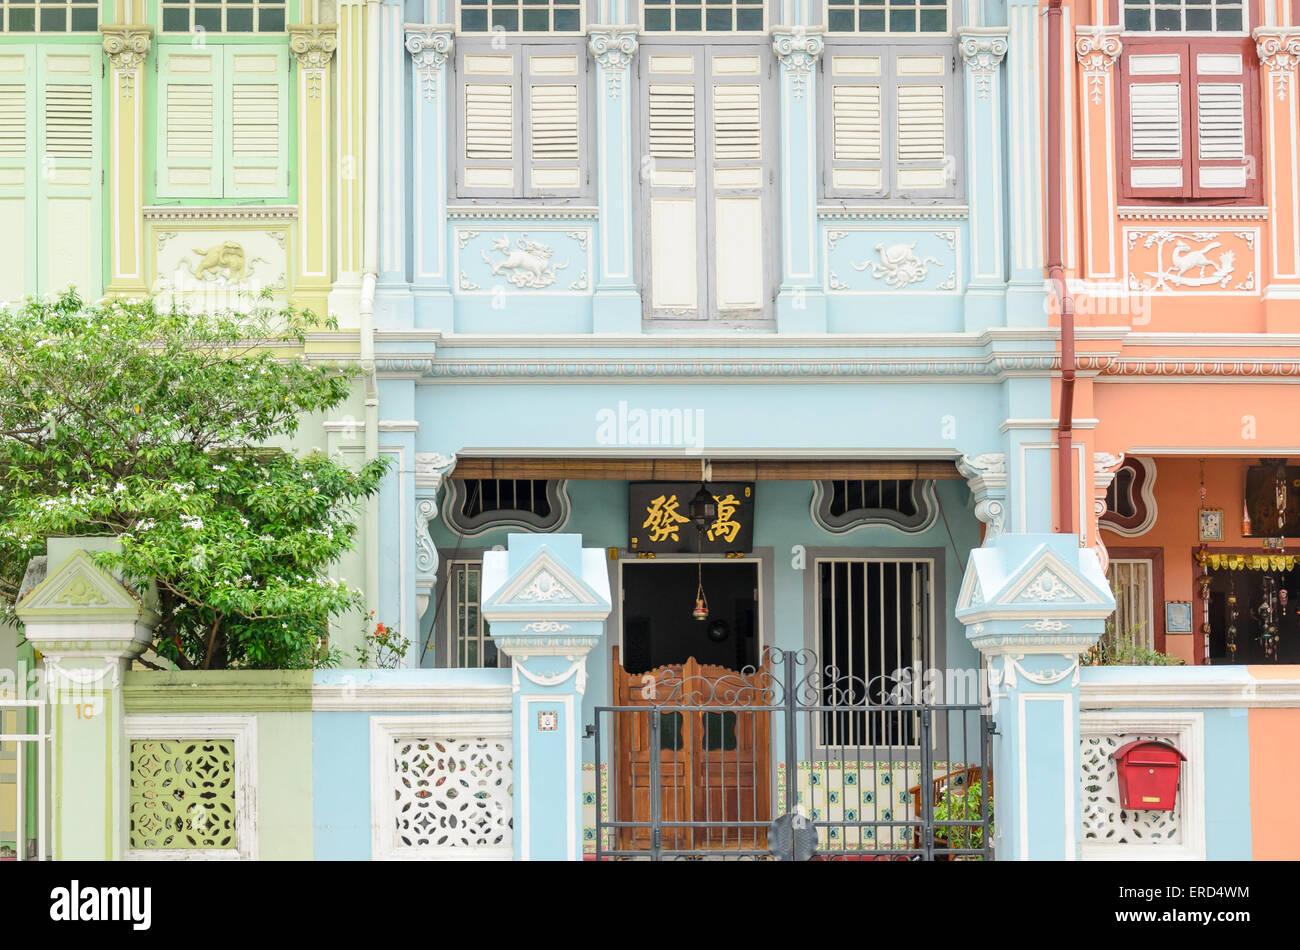 The Baba Nonya style shophouse is an example of Peranakan architecture, Singapore. - Stock Image